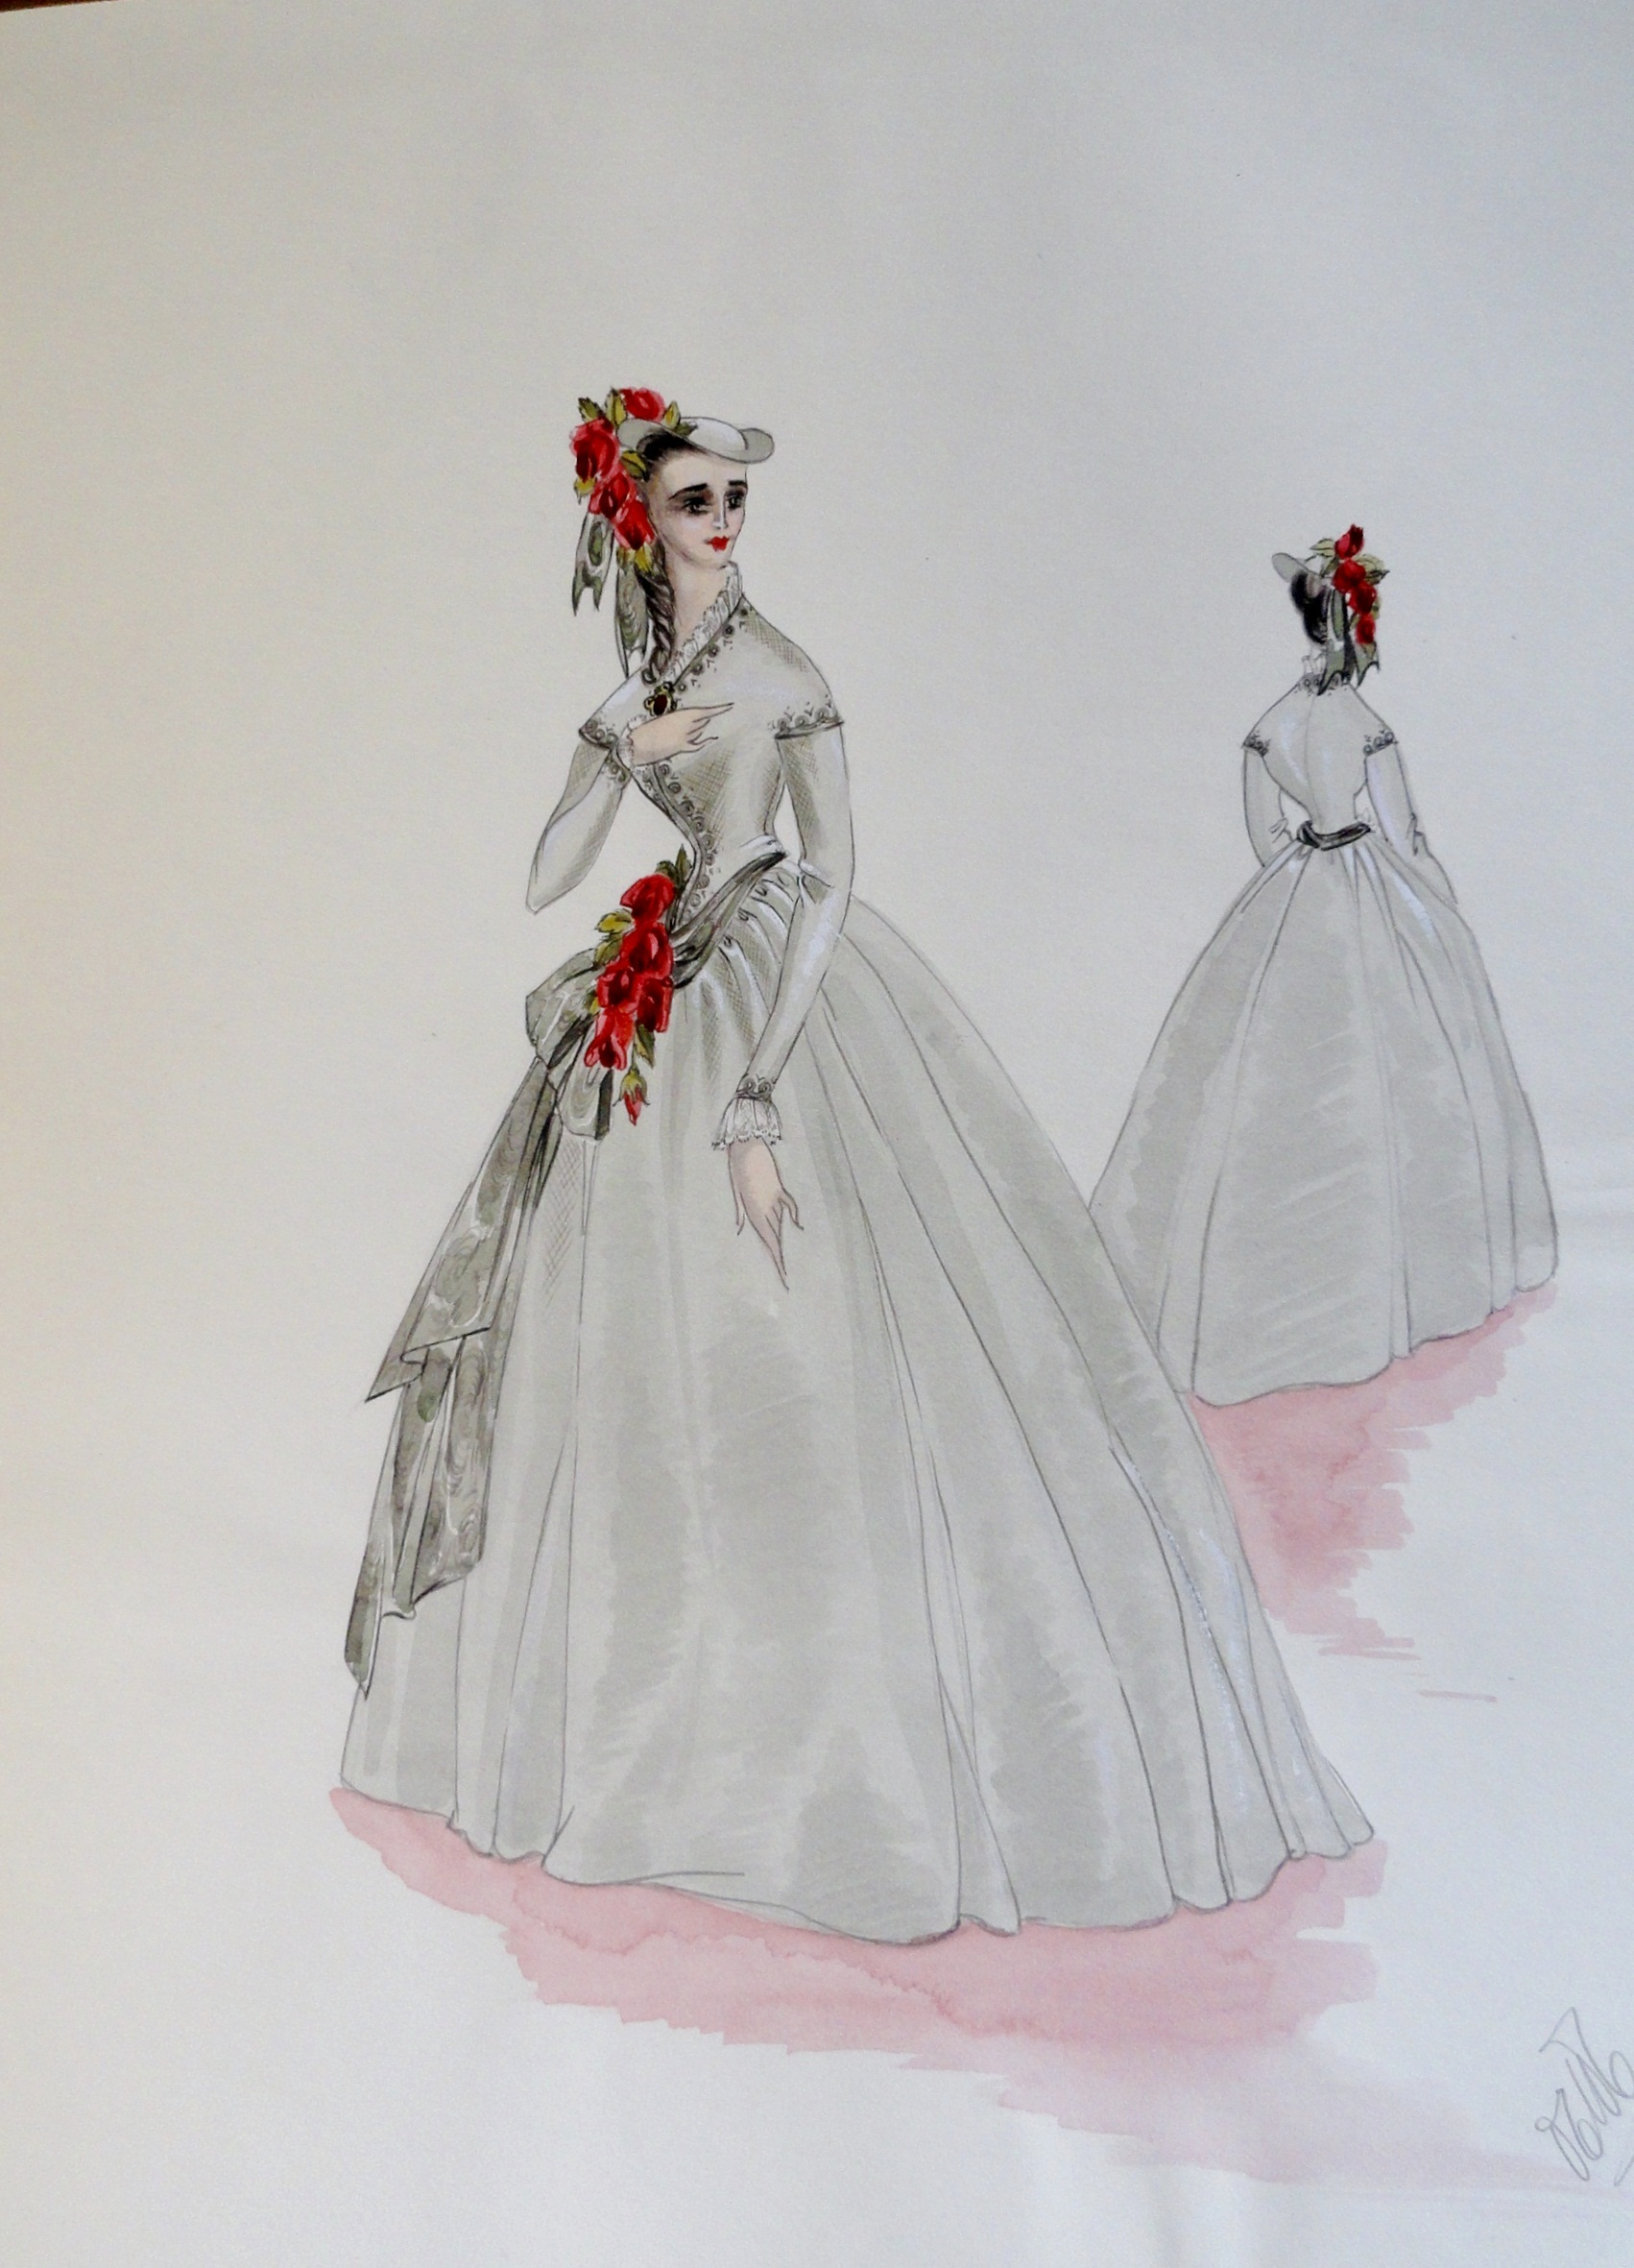 Rachel sister Annette in a grey gown and bonnet with red flowers. Pen and Ink and Watercolor. From the Rachel Portfolio by Owen Hyde Clark. $300.00.